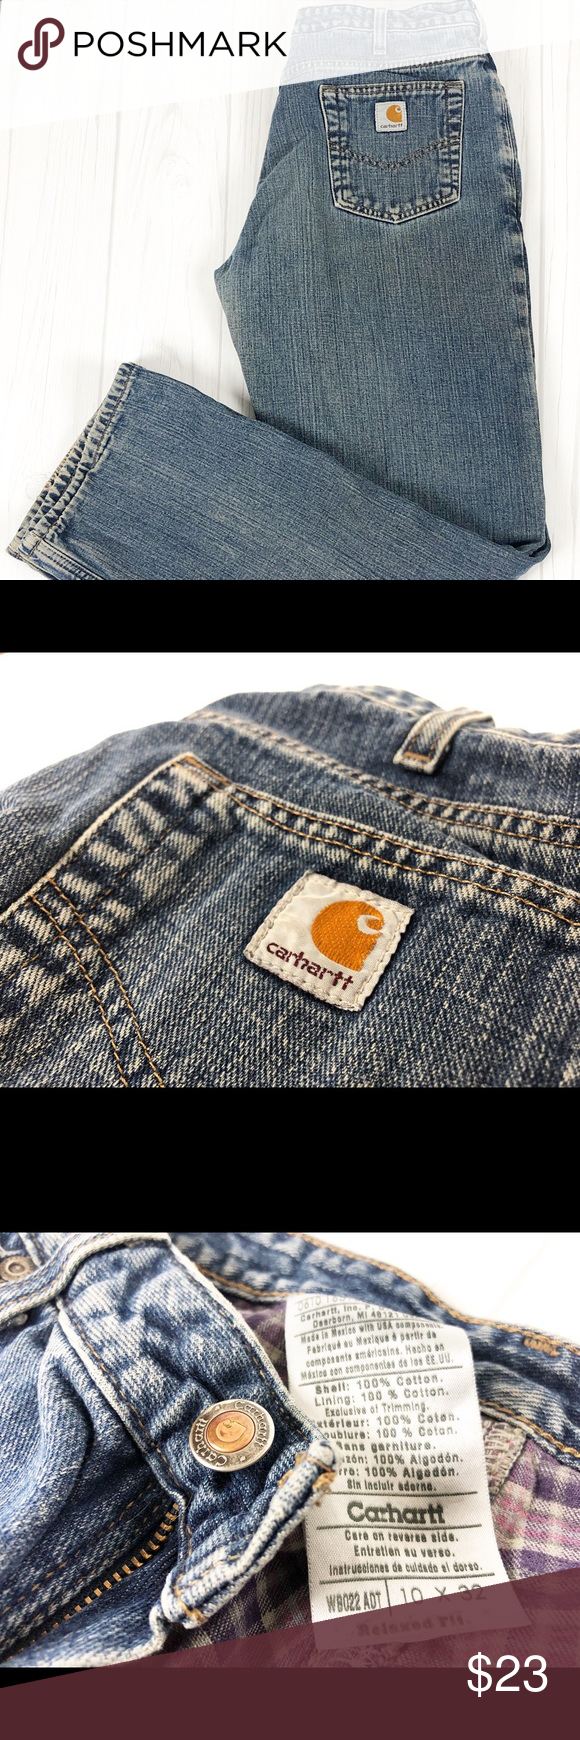 Carhartt Women's Jeans Size 10x32 100%Cotton Women's classic denim pants built for unrestricted movement. Rural living demands a lot from our clothing. These women's heavyweight jeans feature a stretch canvas build that offers unrestricted movement and the durability to meet the rigors of your everyday life. They give you our roomiest fit, and the waist and back are cut to stay put as you squat or bend down. Carhartt Jeans #carharttwomen